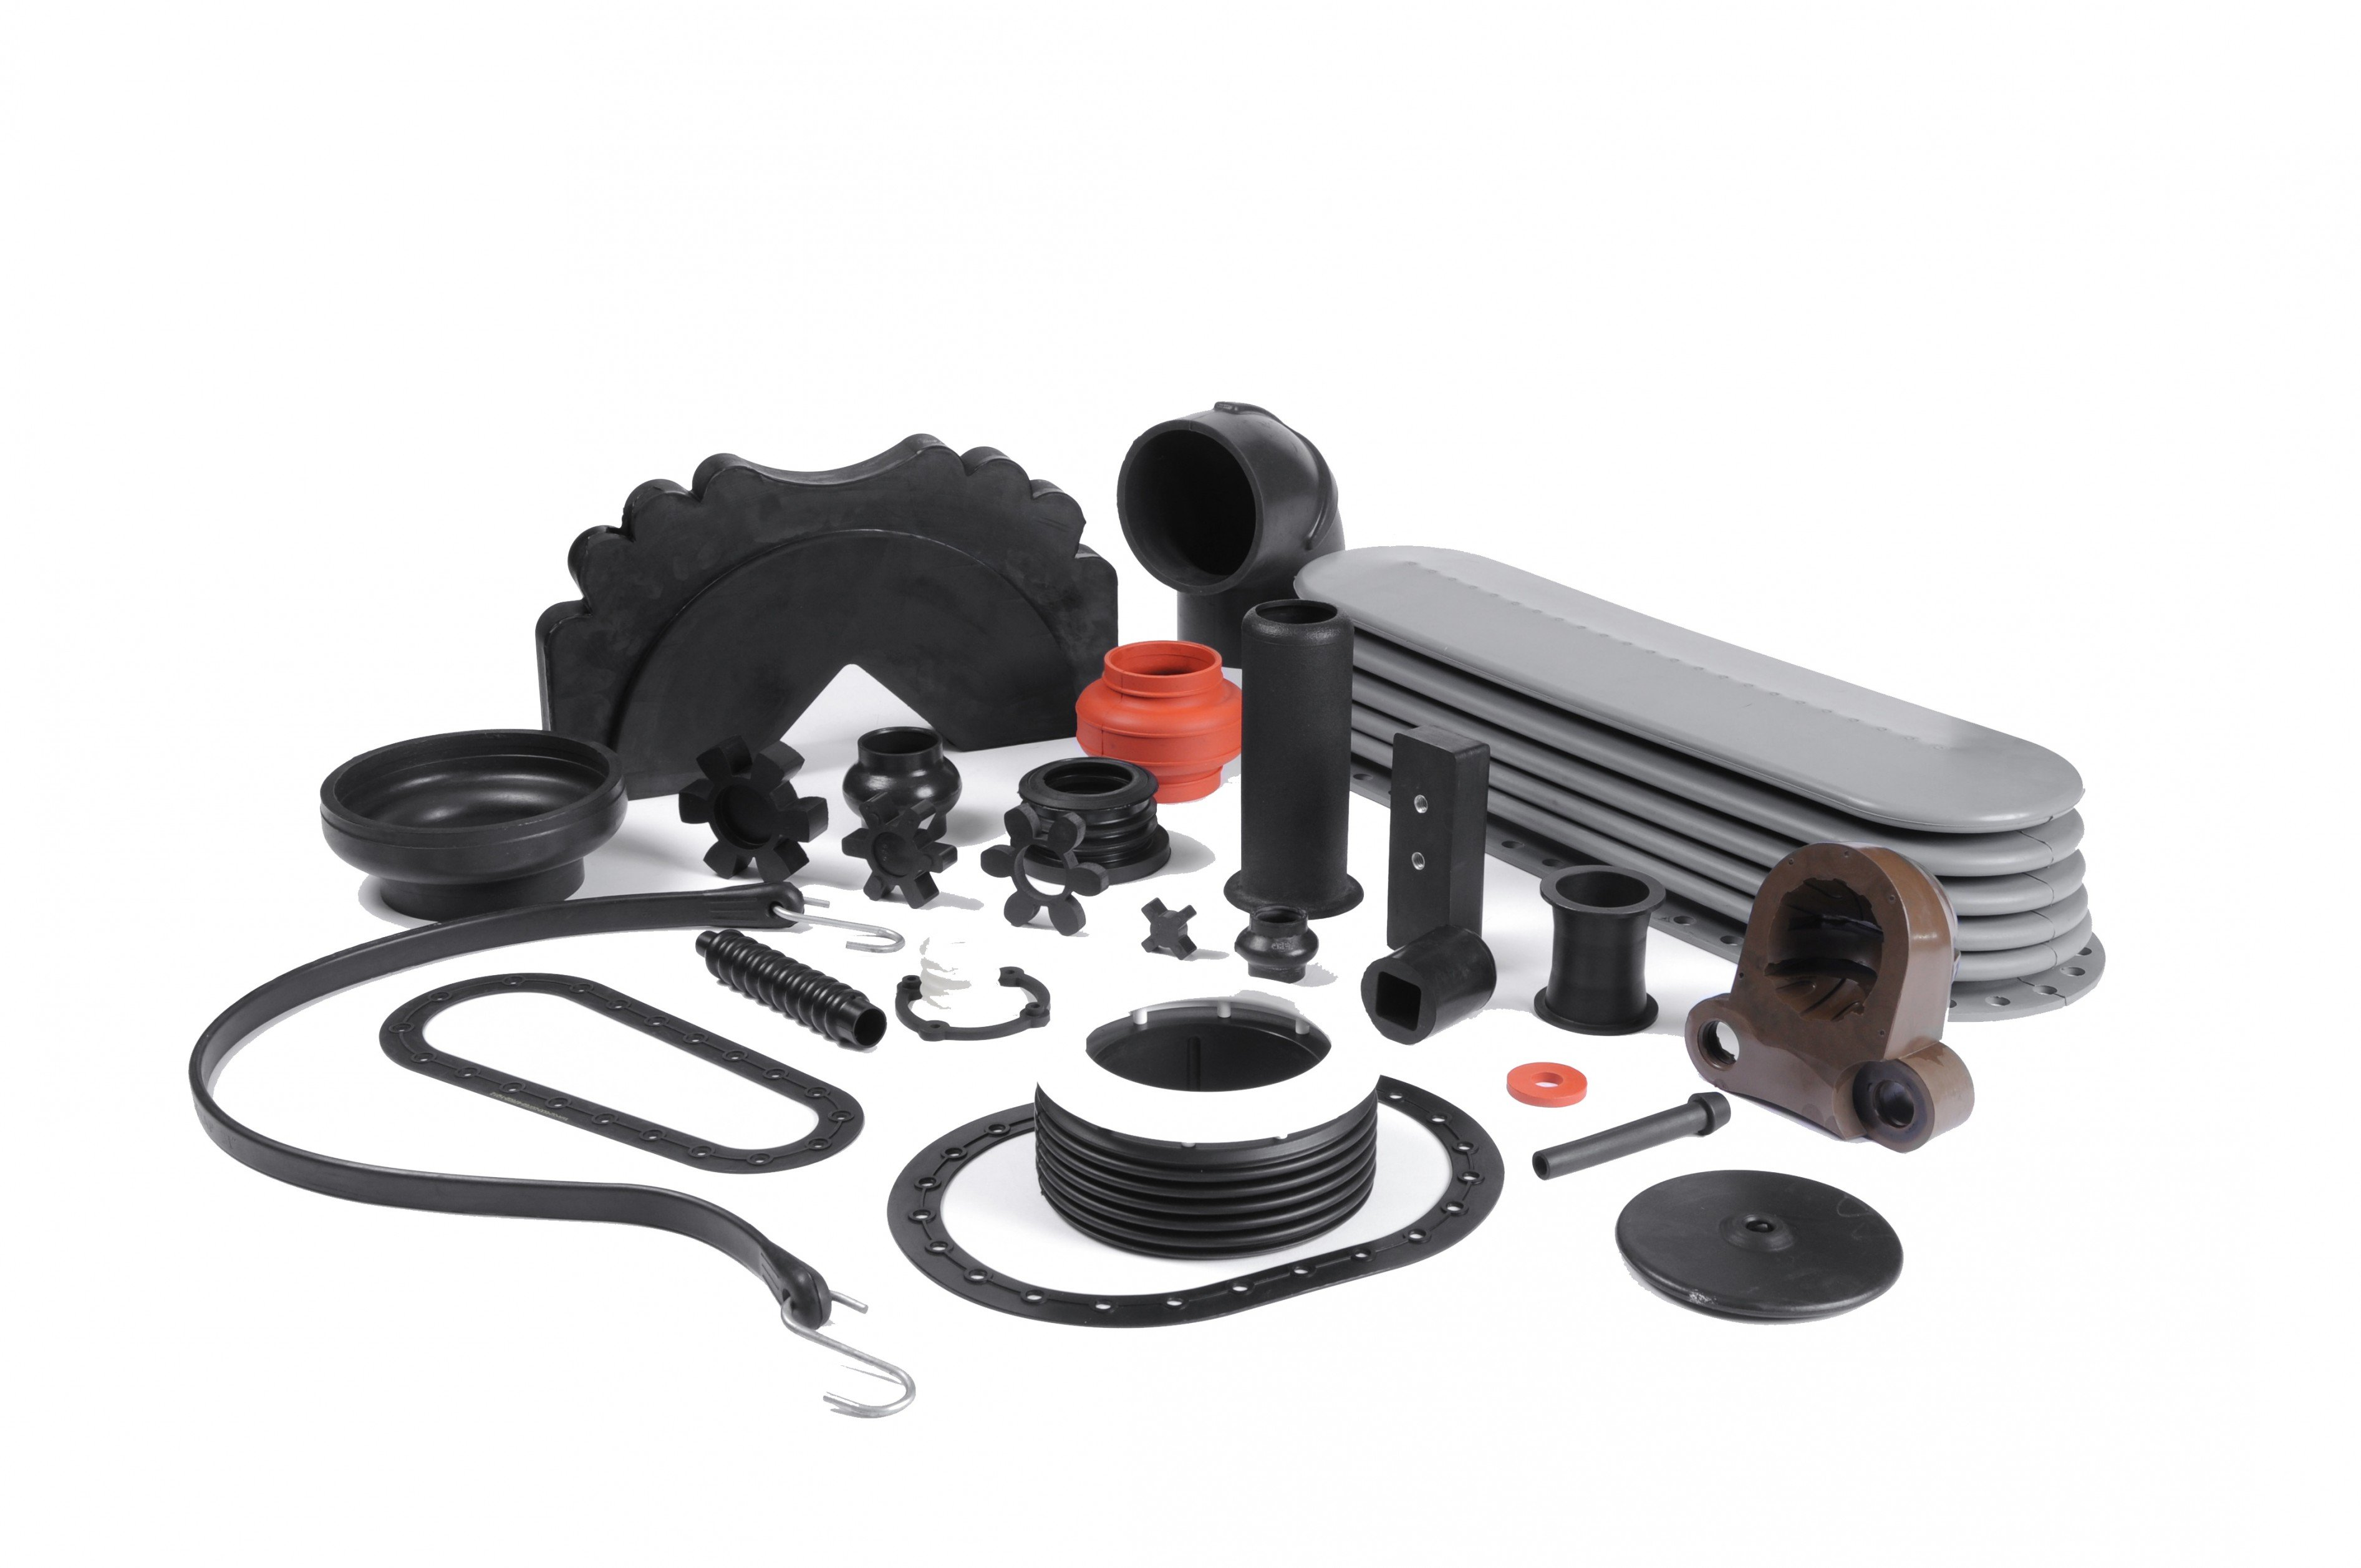 Multiple Molded Rubber Examples From Gaskets to Custom Parts